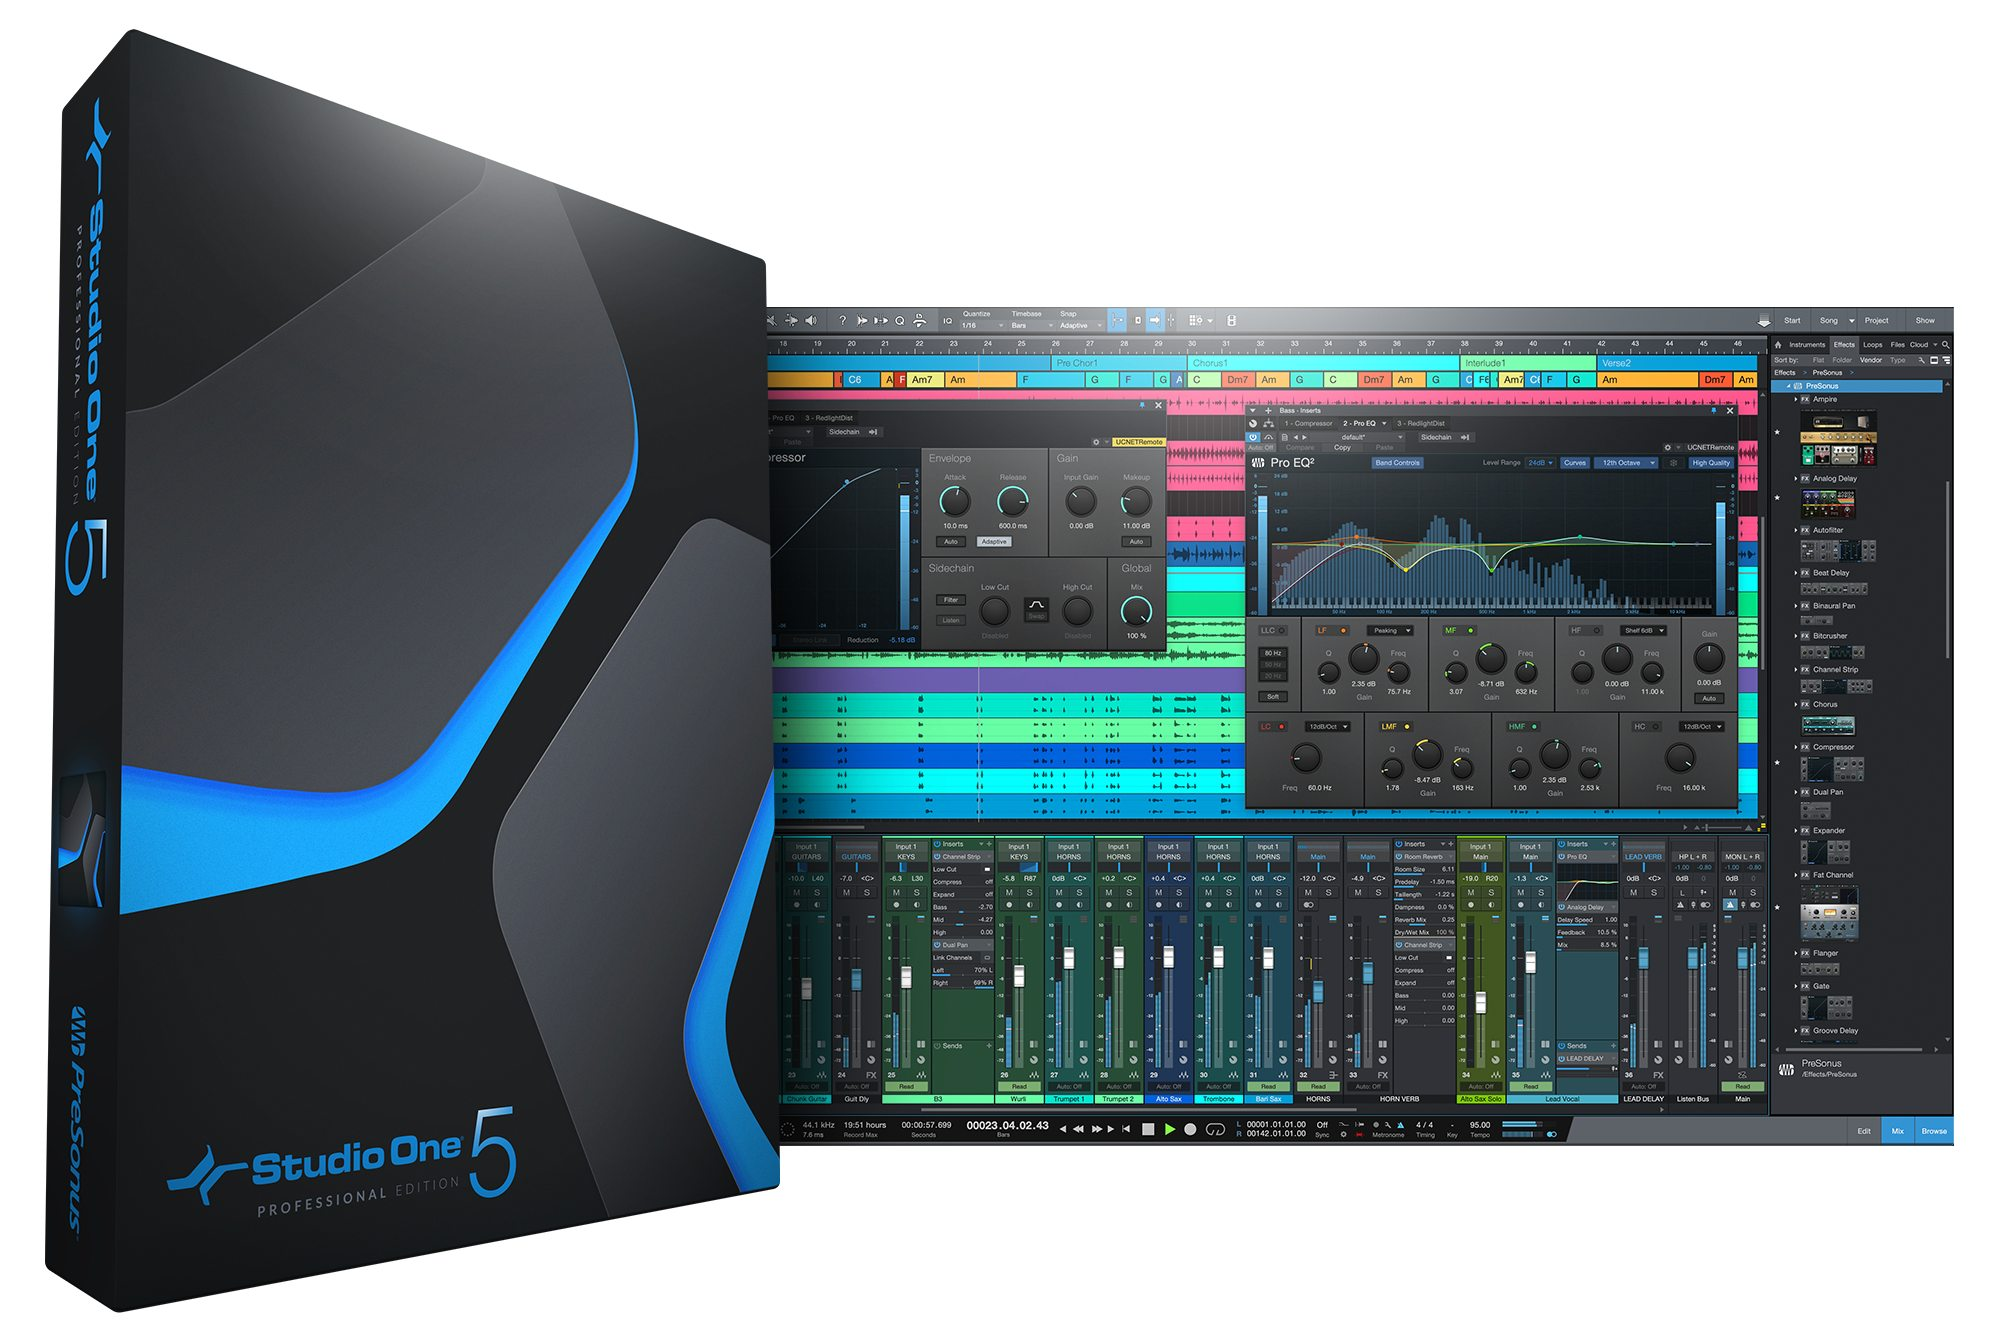 Studio_One_Pro_Box_and_ScreenShot_big.jpg (302 KB)